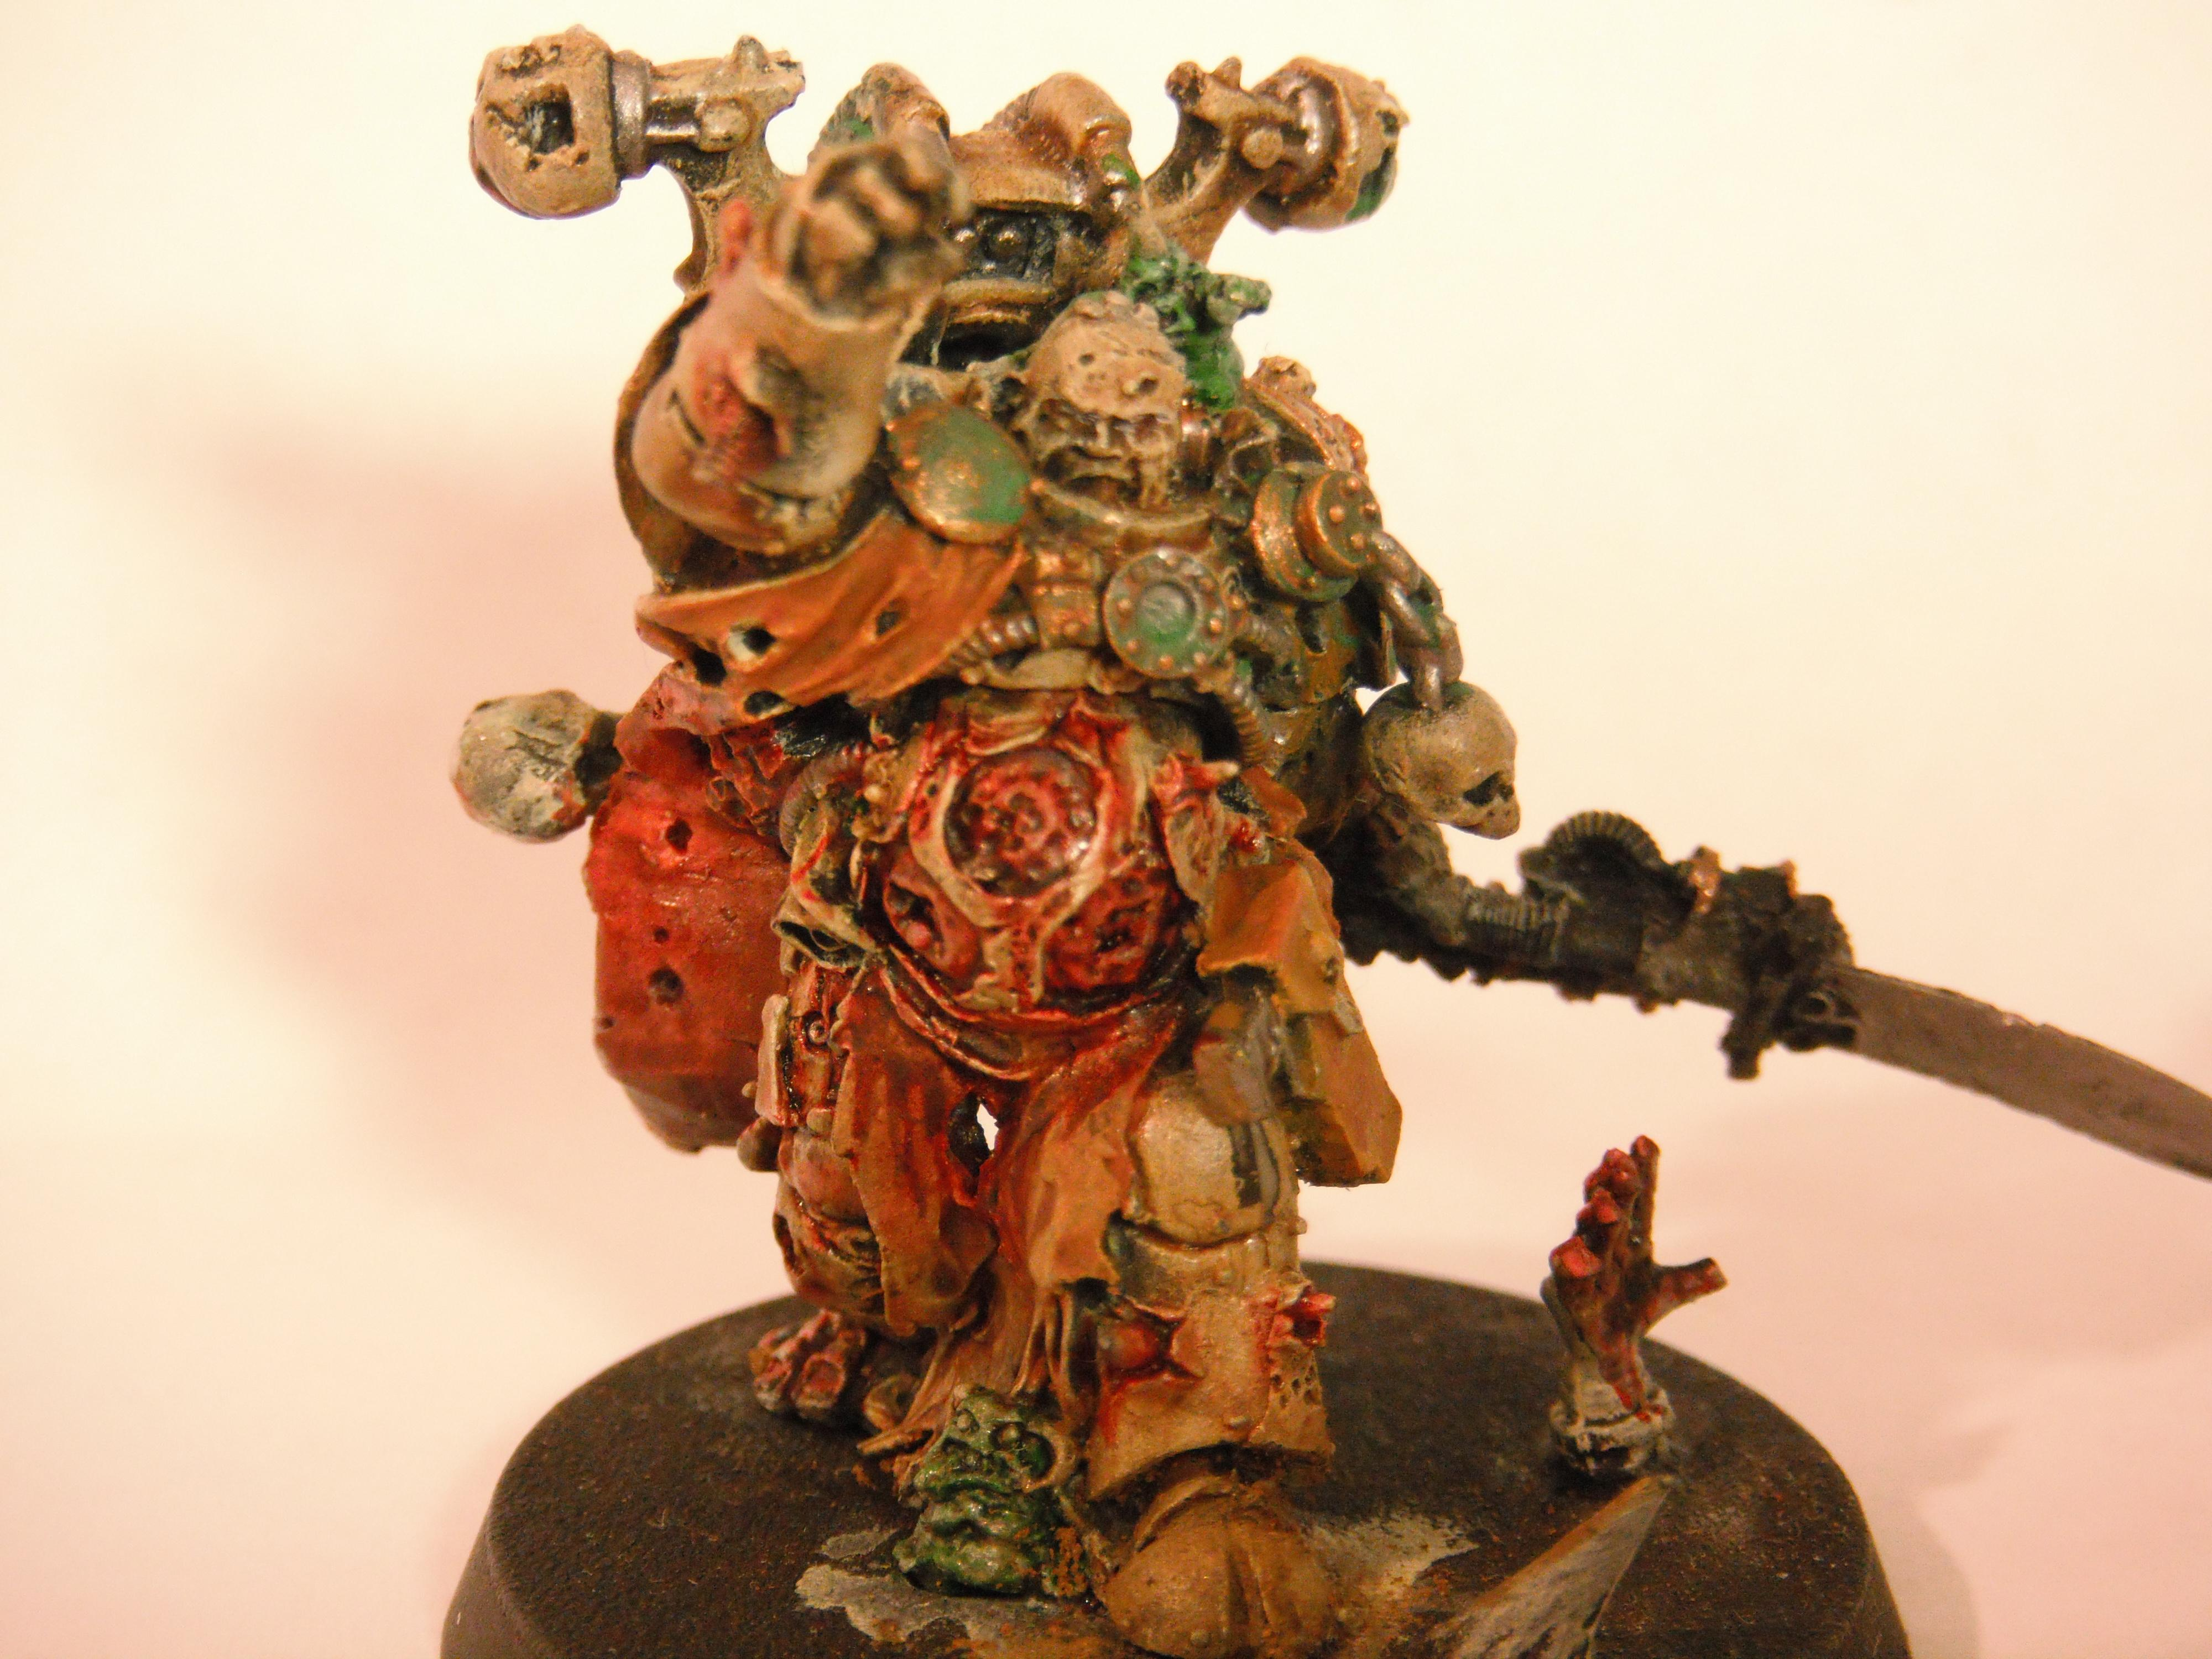 40k Warhammer 40k, Apostles Of Contagion, Chaos, Chaos Space Marines, Forge World, Nurgle, Plague Marines, The Apostles Of Contagion, Warhammer 40,000